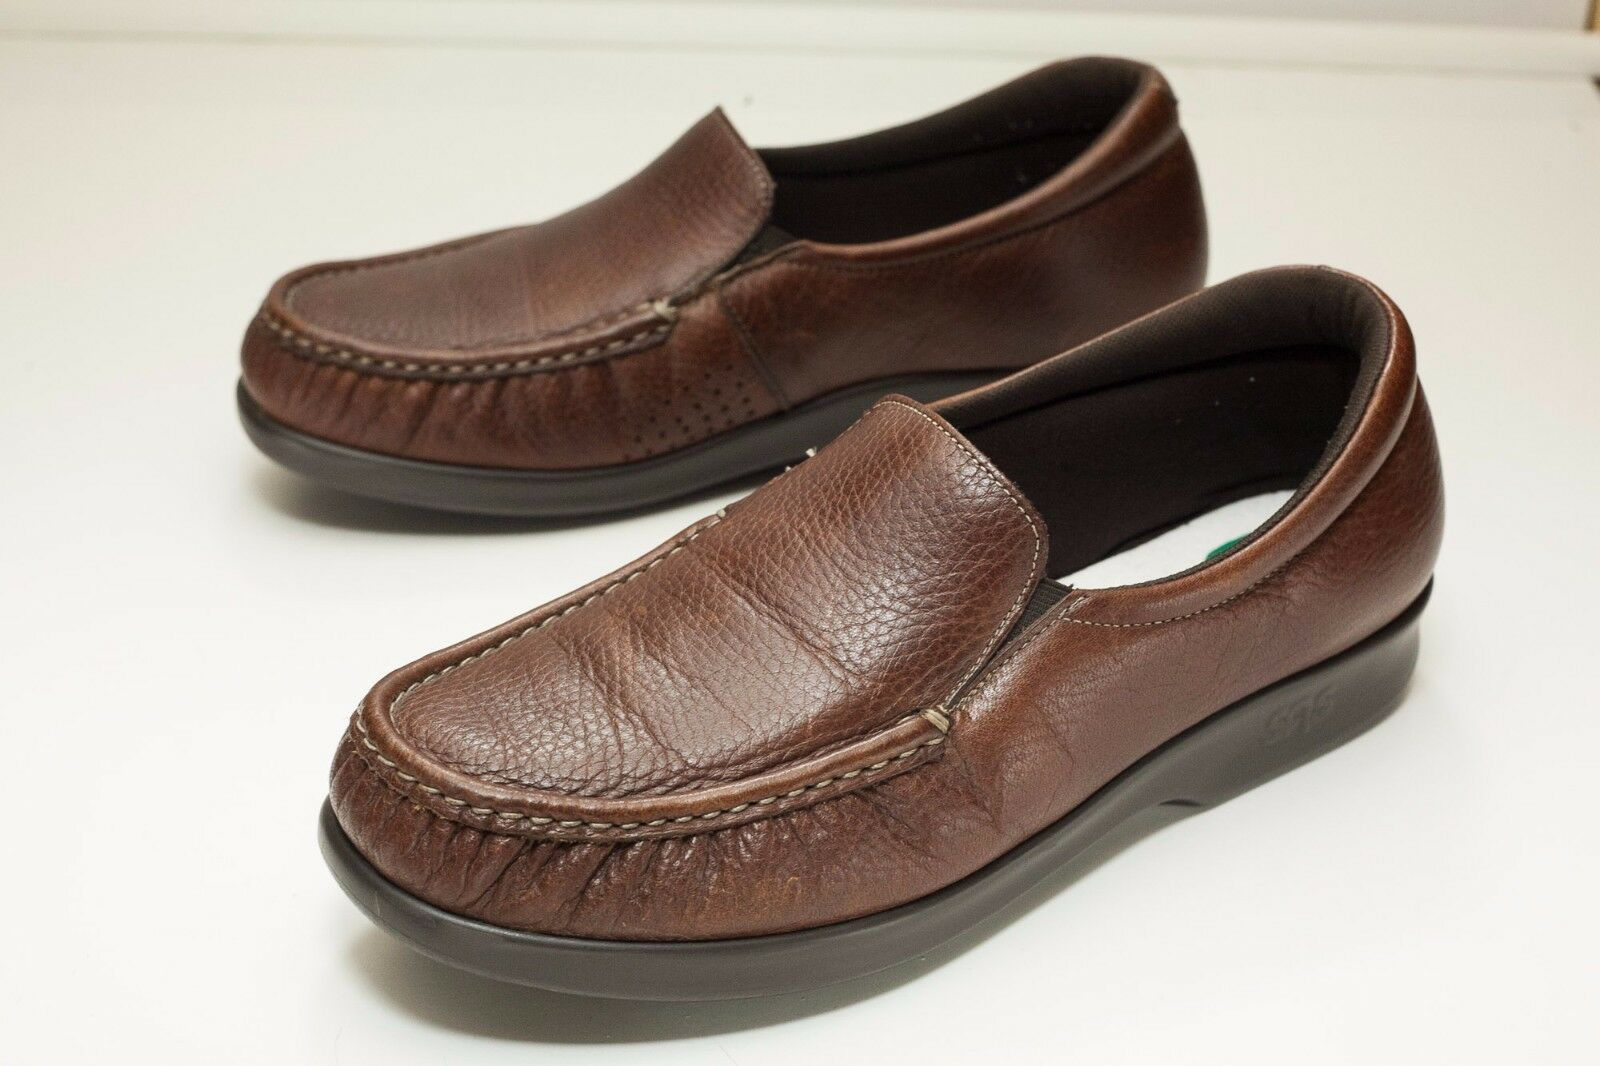 SAS 10 Brown Loafers Women's - Missing Insoles